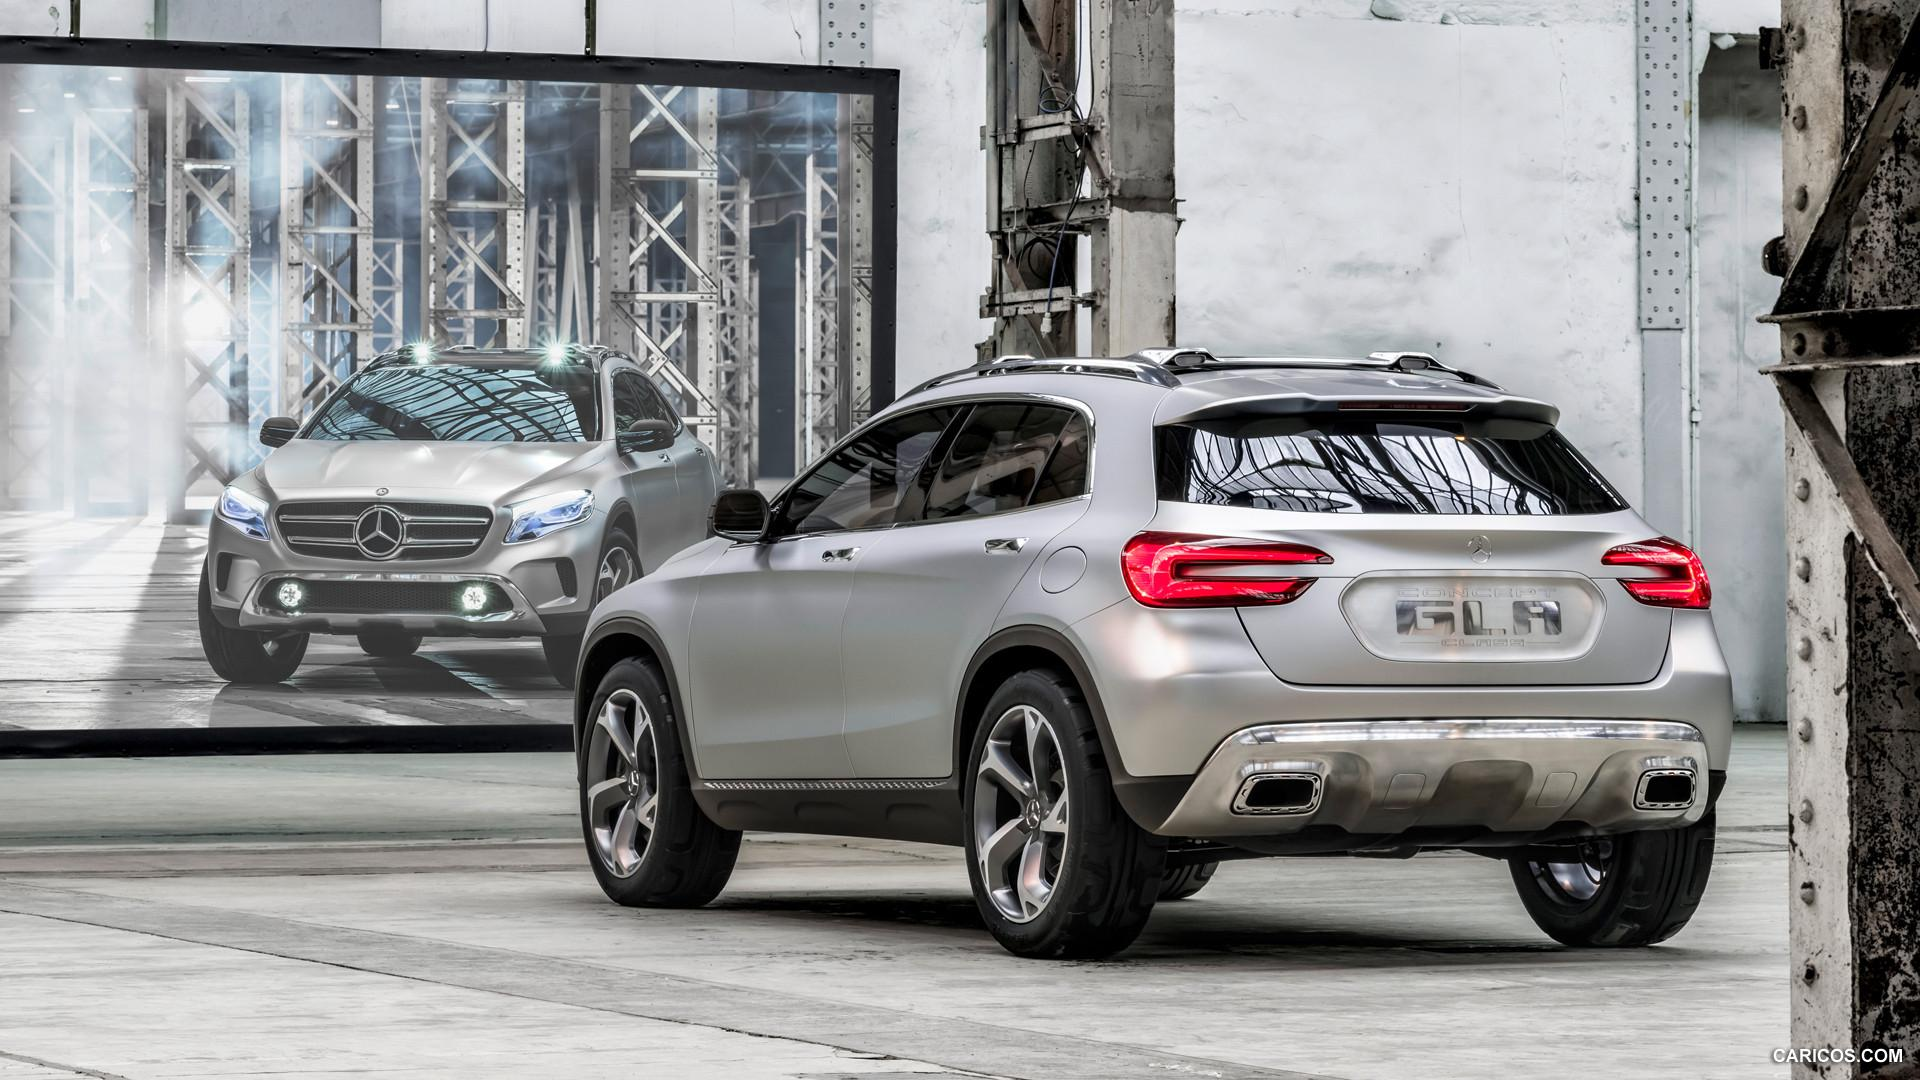 2013 Mercedes-Benz GLA Concept - Rear | HD Wallpaper #13